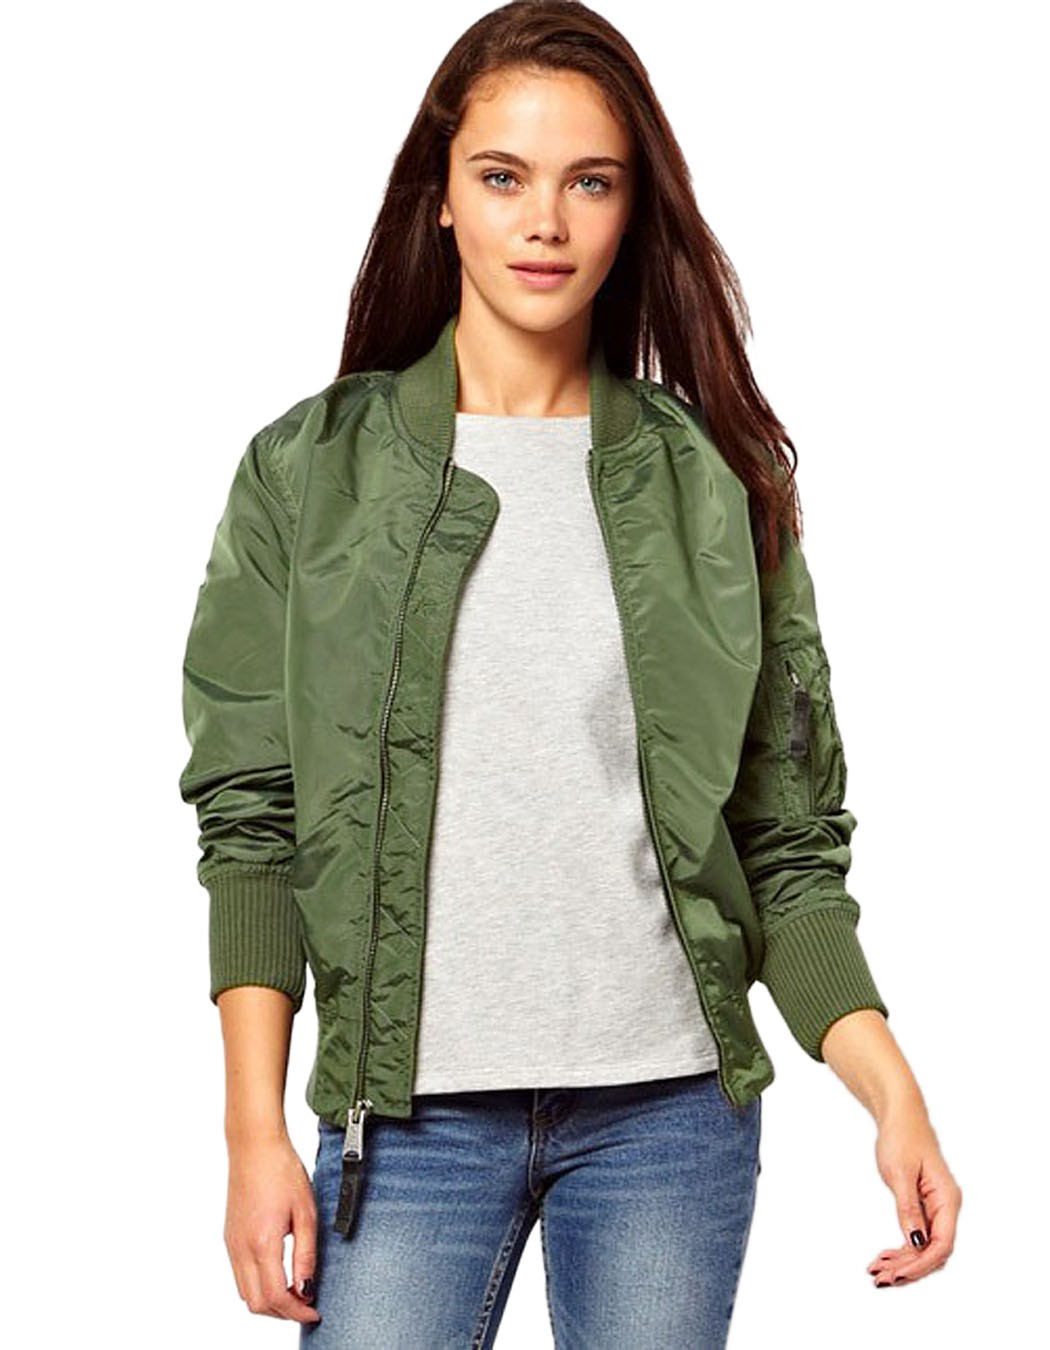 Images of Long Army Green Jacket - Reikian